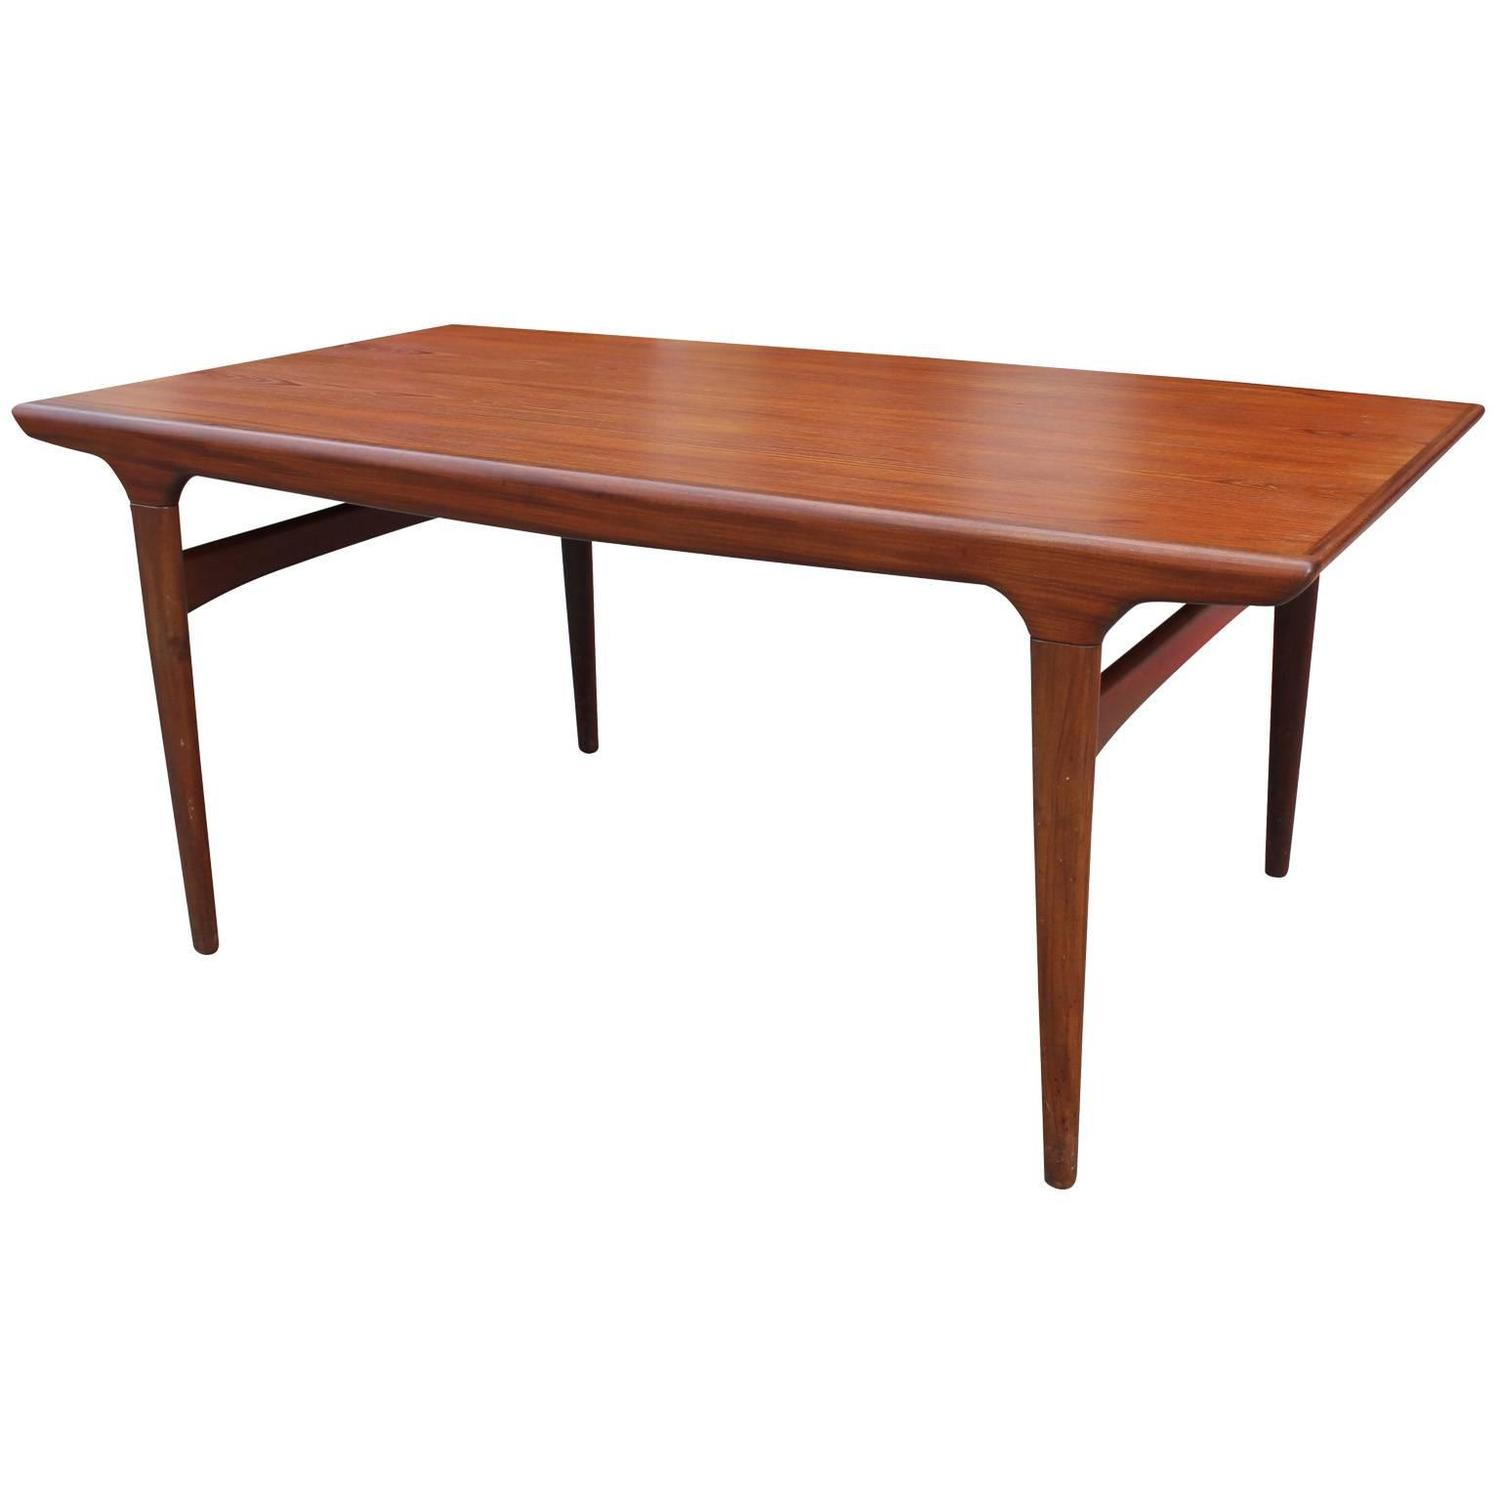 Elegant Danish Teak Dining Table with a Cantilevered Leaf  : treakdining6z from www.1stdibs.com size 1500 x 1500 jpeg 51kB